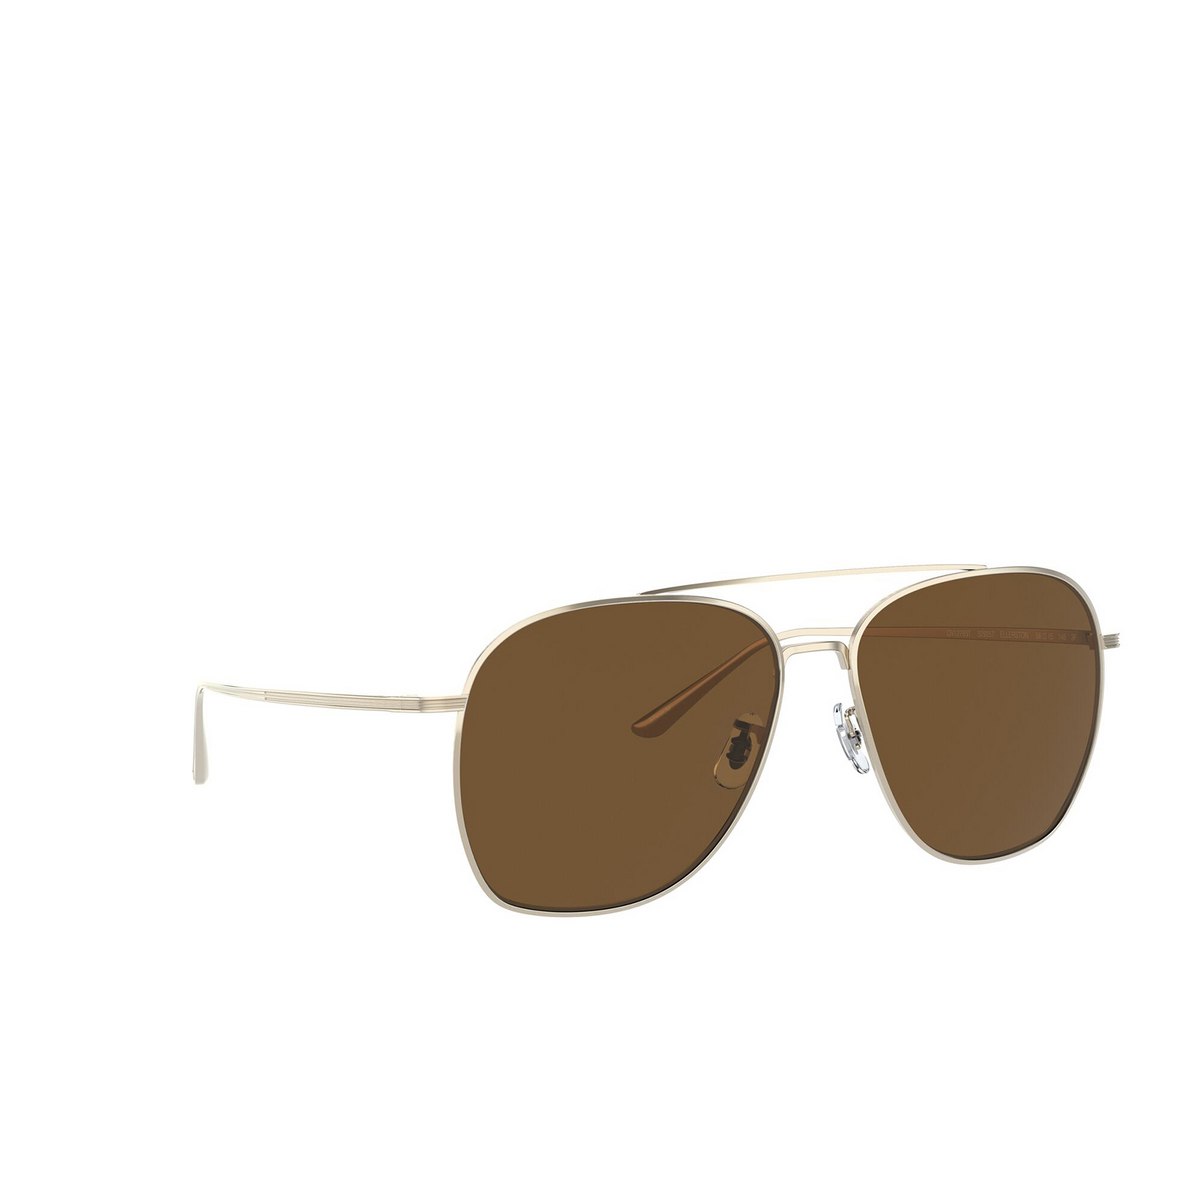 Oliver Peoples® Aviator Sunglasses: Ellerston OV1278ST color Gold 529257 - three-quarters view.